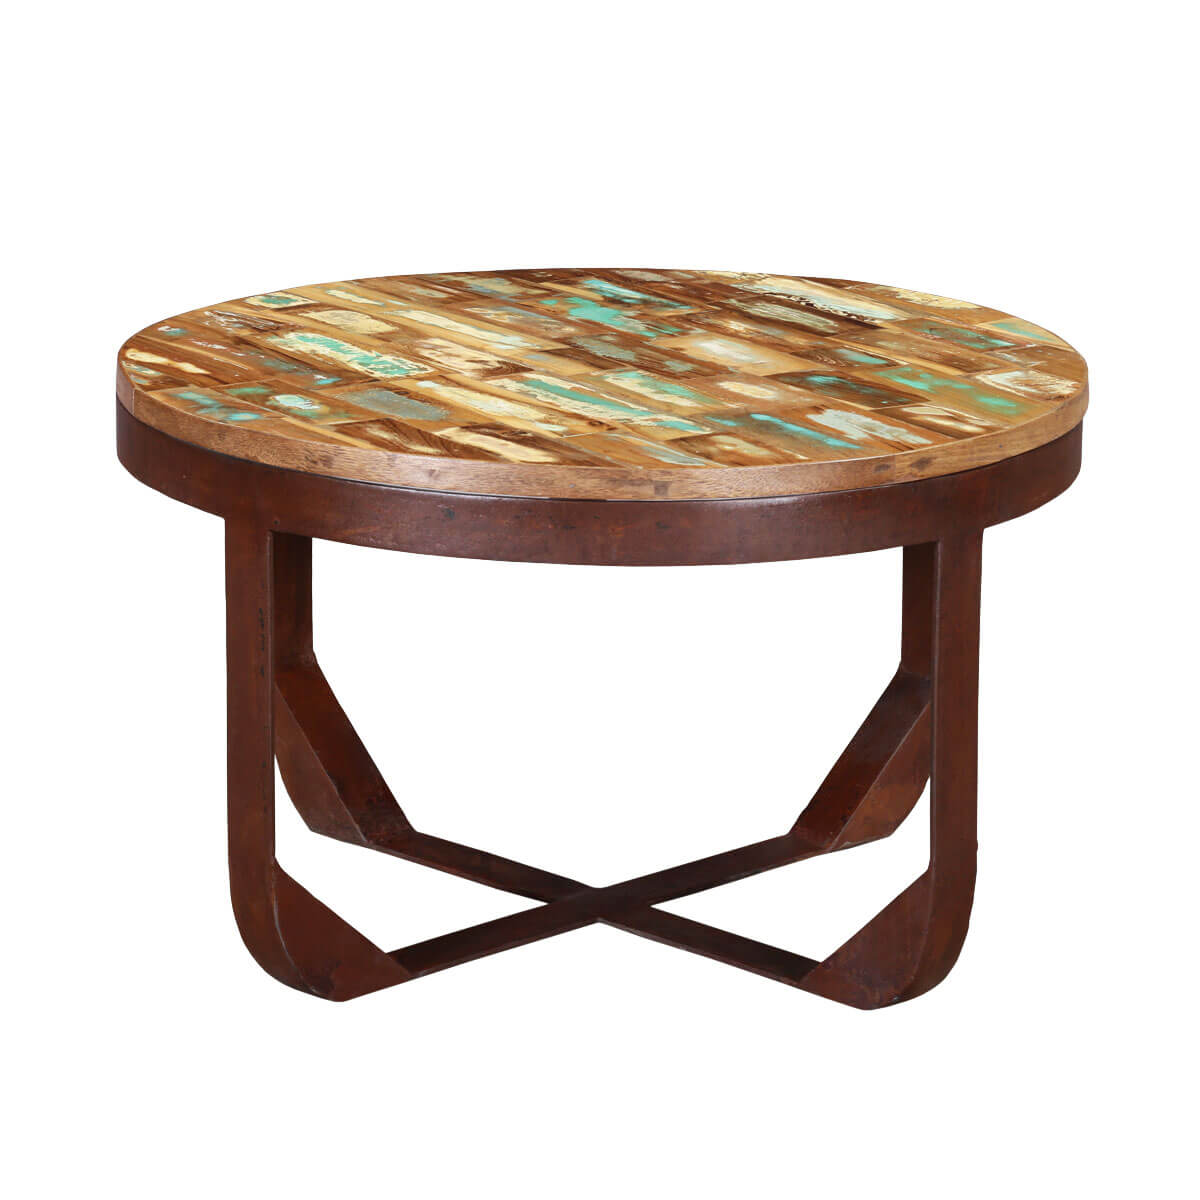 reclaimed wood industrial round coffee table. Black Bedroom Furniture Sets. Home Design Ideas